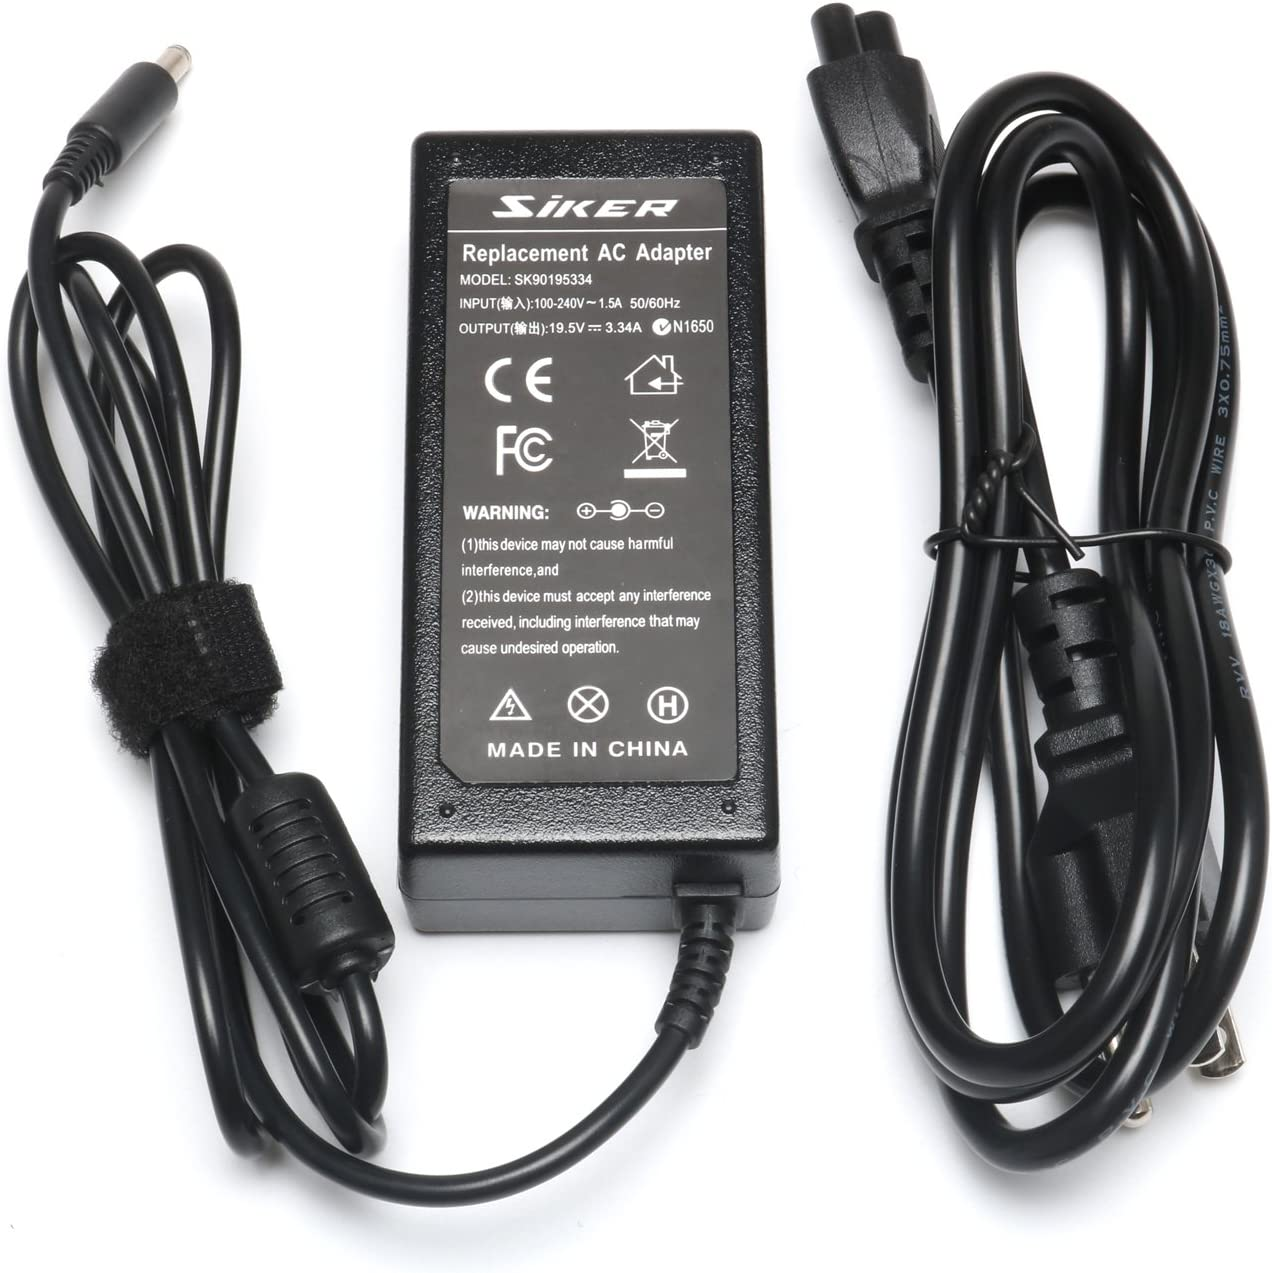 19.5V 3.34A 65W AC Power Adapter Charger for Dell Inspiron 15-3000 15-5000 15-7000 11-3000 13-5000 13-7000 17-5000 XPS 13 Series 5559 5558 5755 5758 P20T P20T002 with Size 4.5mm 3.0mm